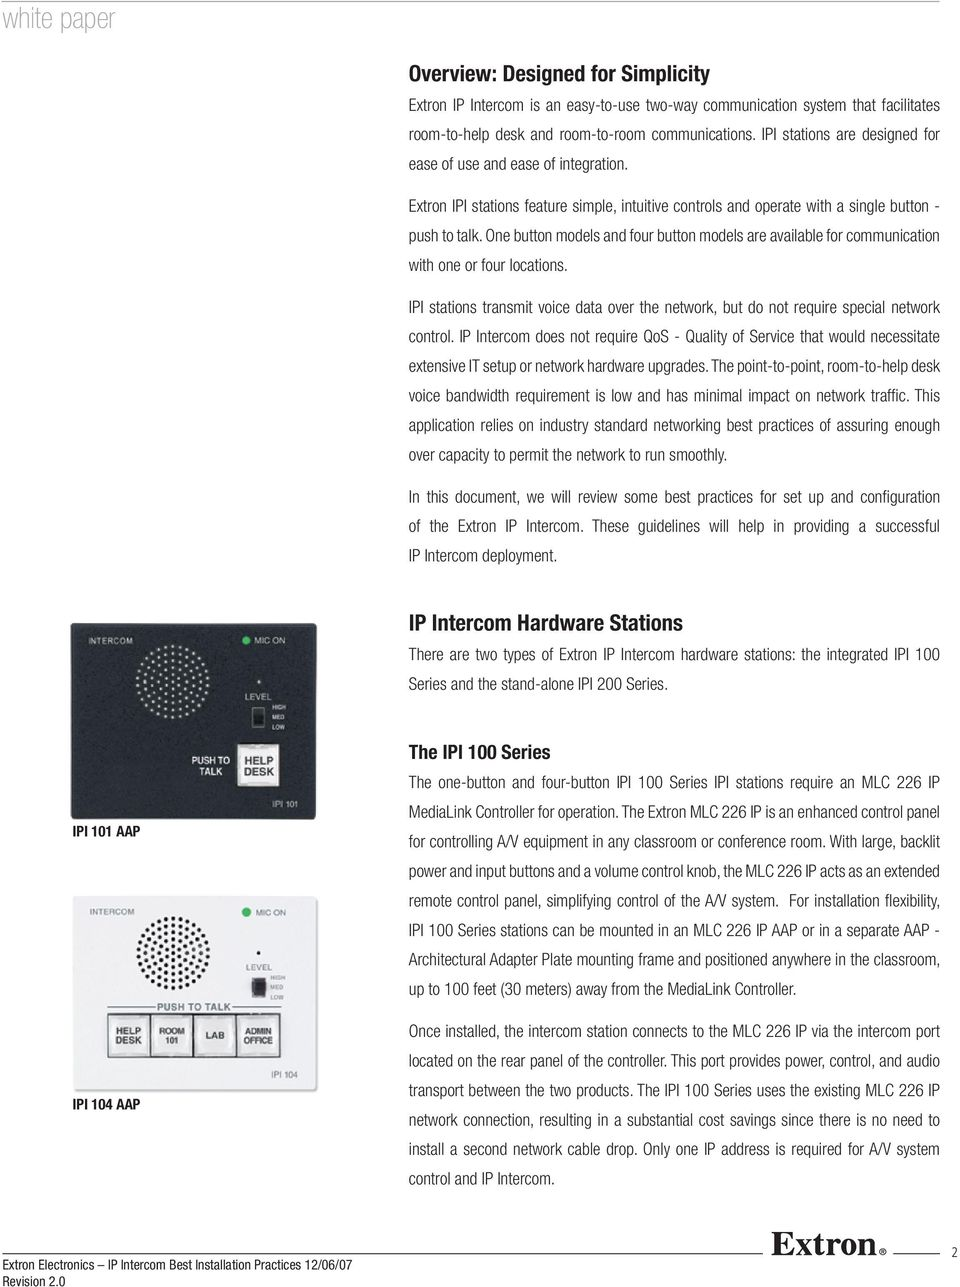 One button models and four button models are available for communication with one or four locations. IPI stations transmit voice data over the network, but do not require special network control.